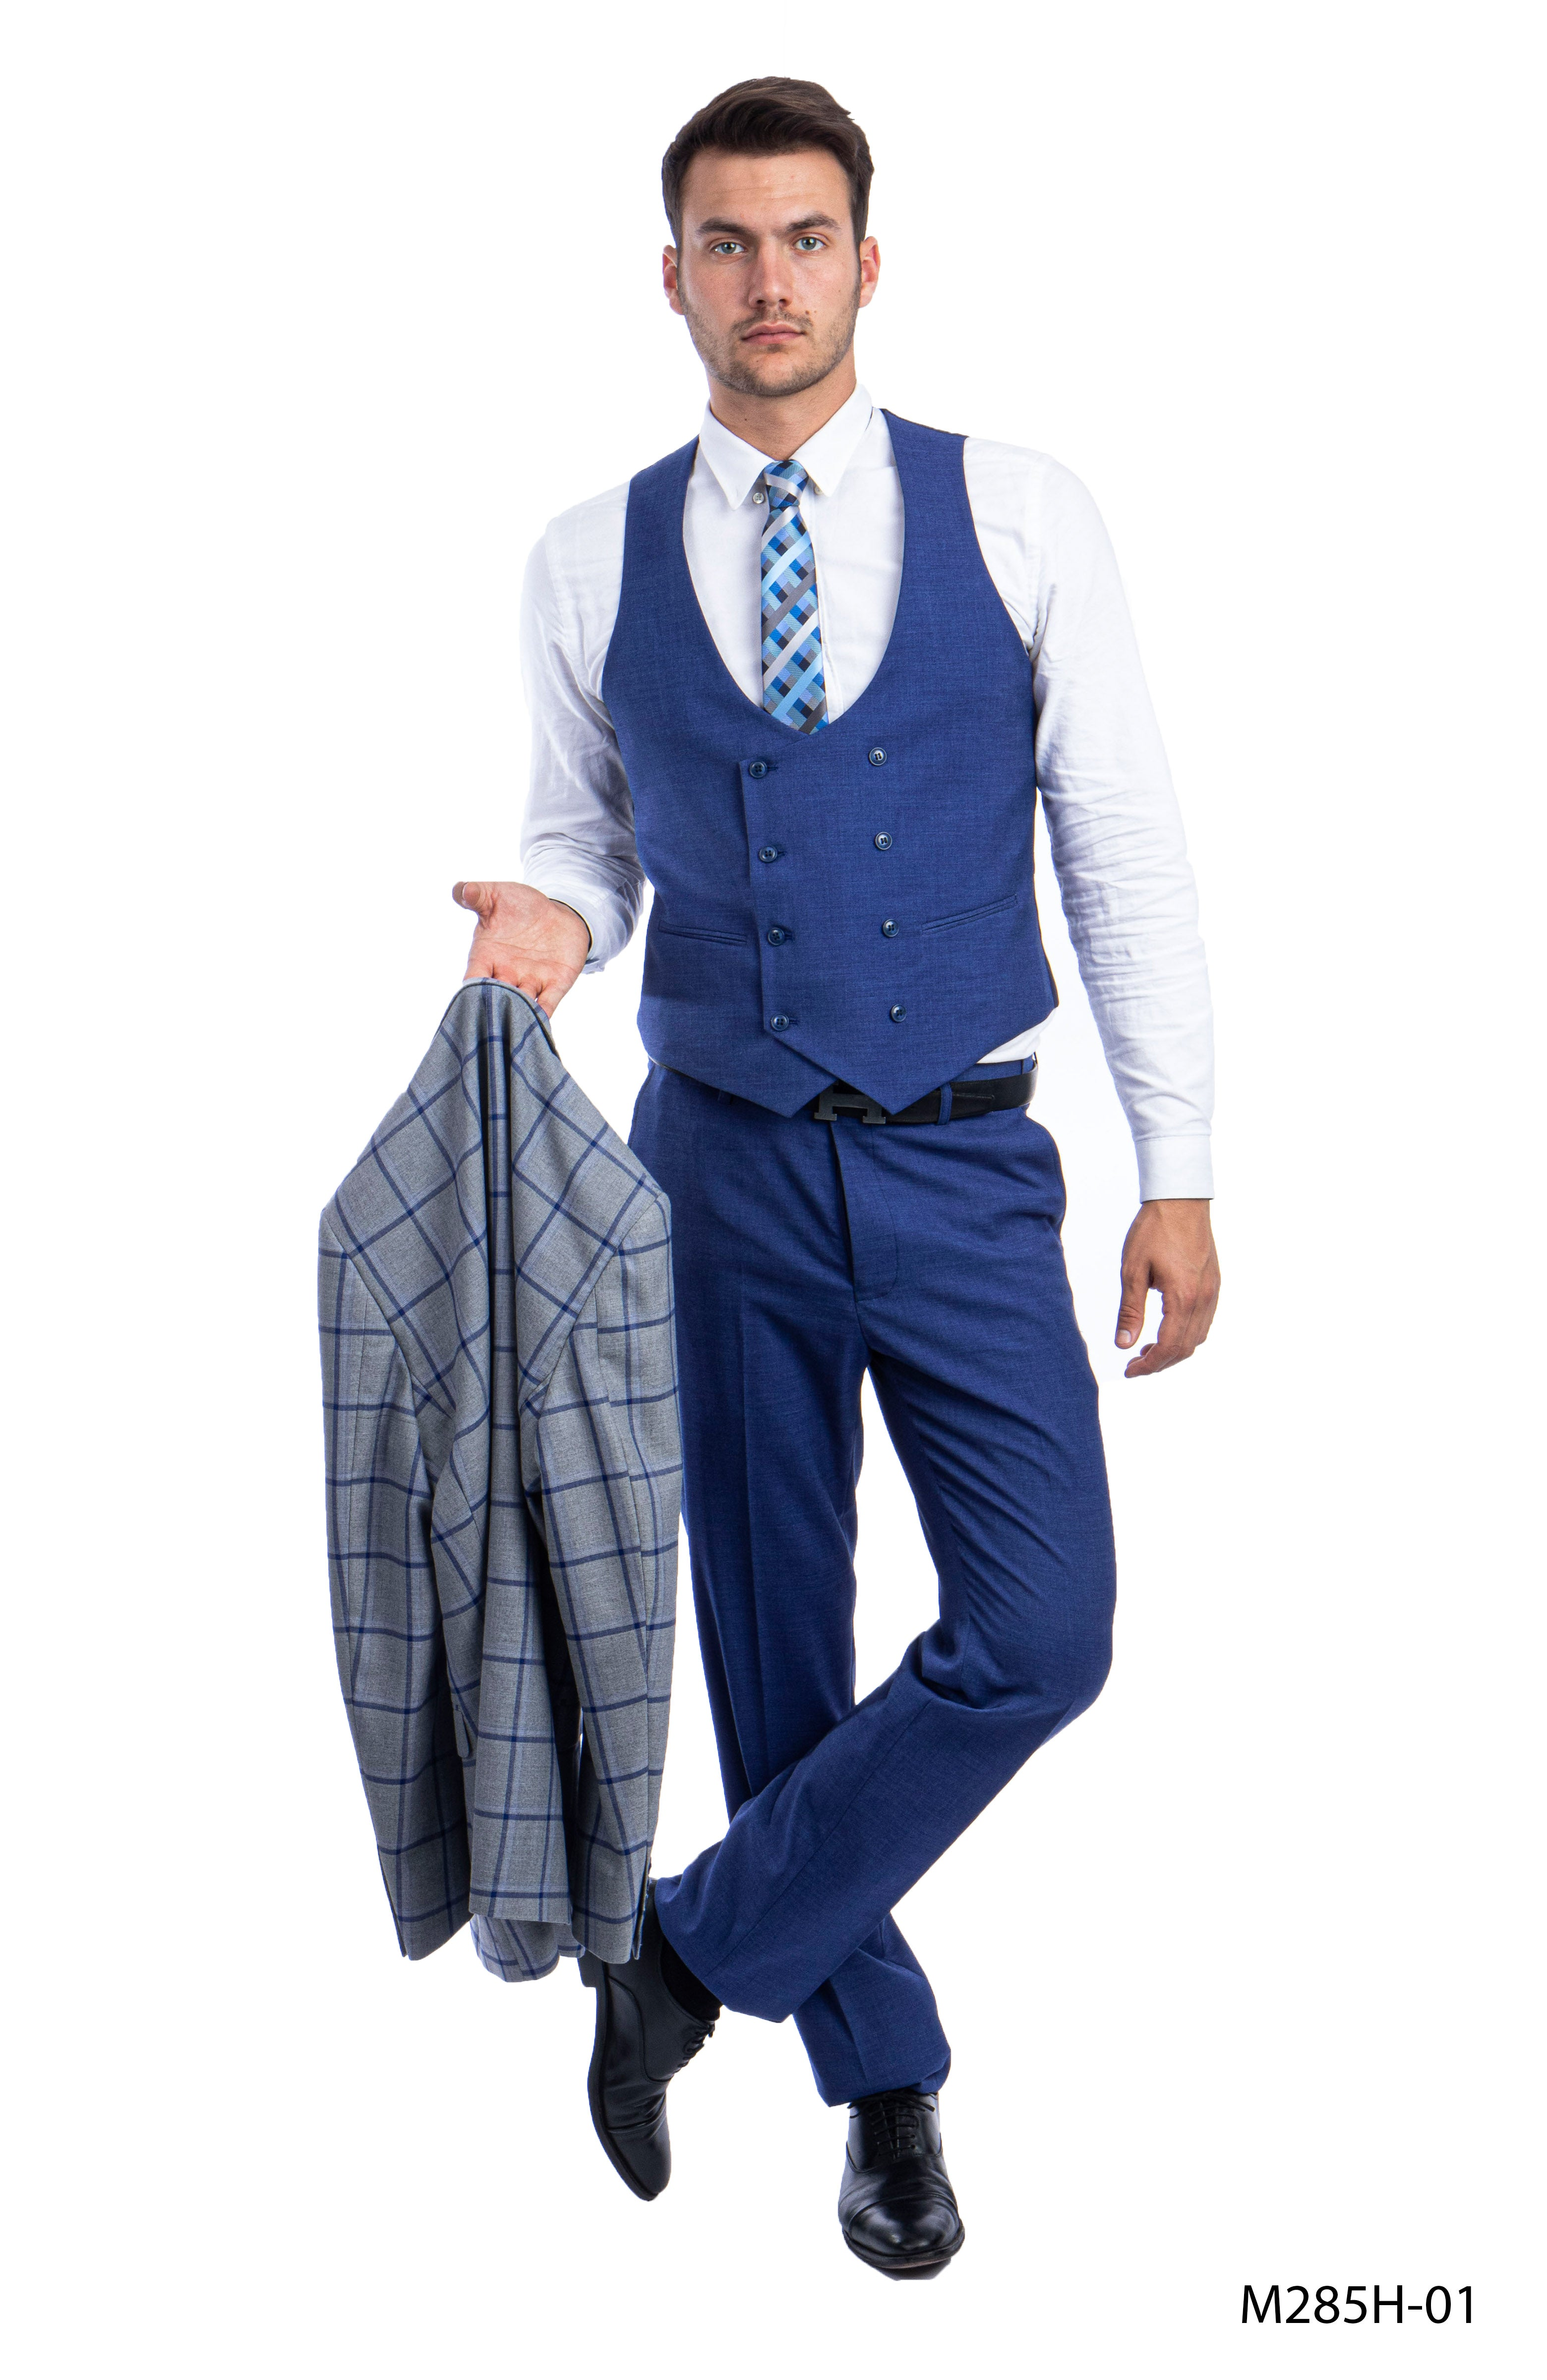 Gray/Blue Suit For Men Formal Suits For All Ocassions